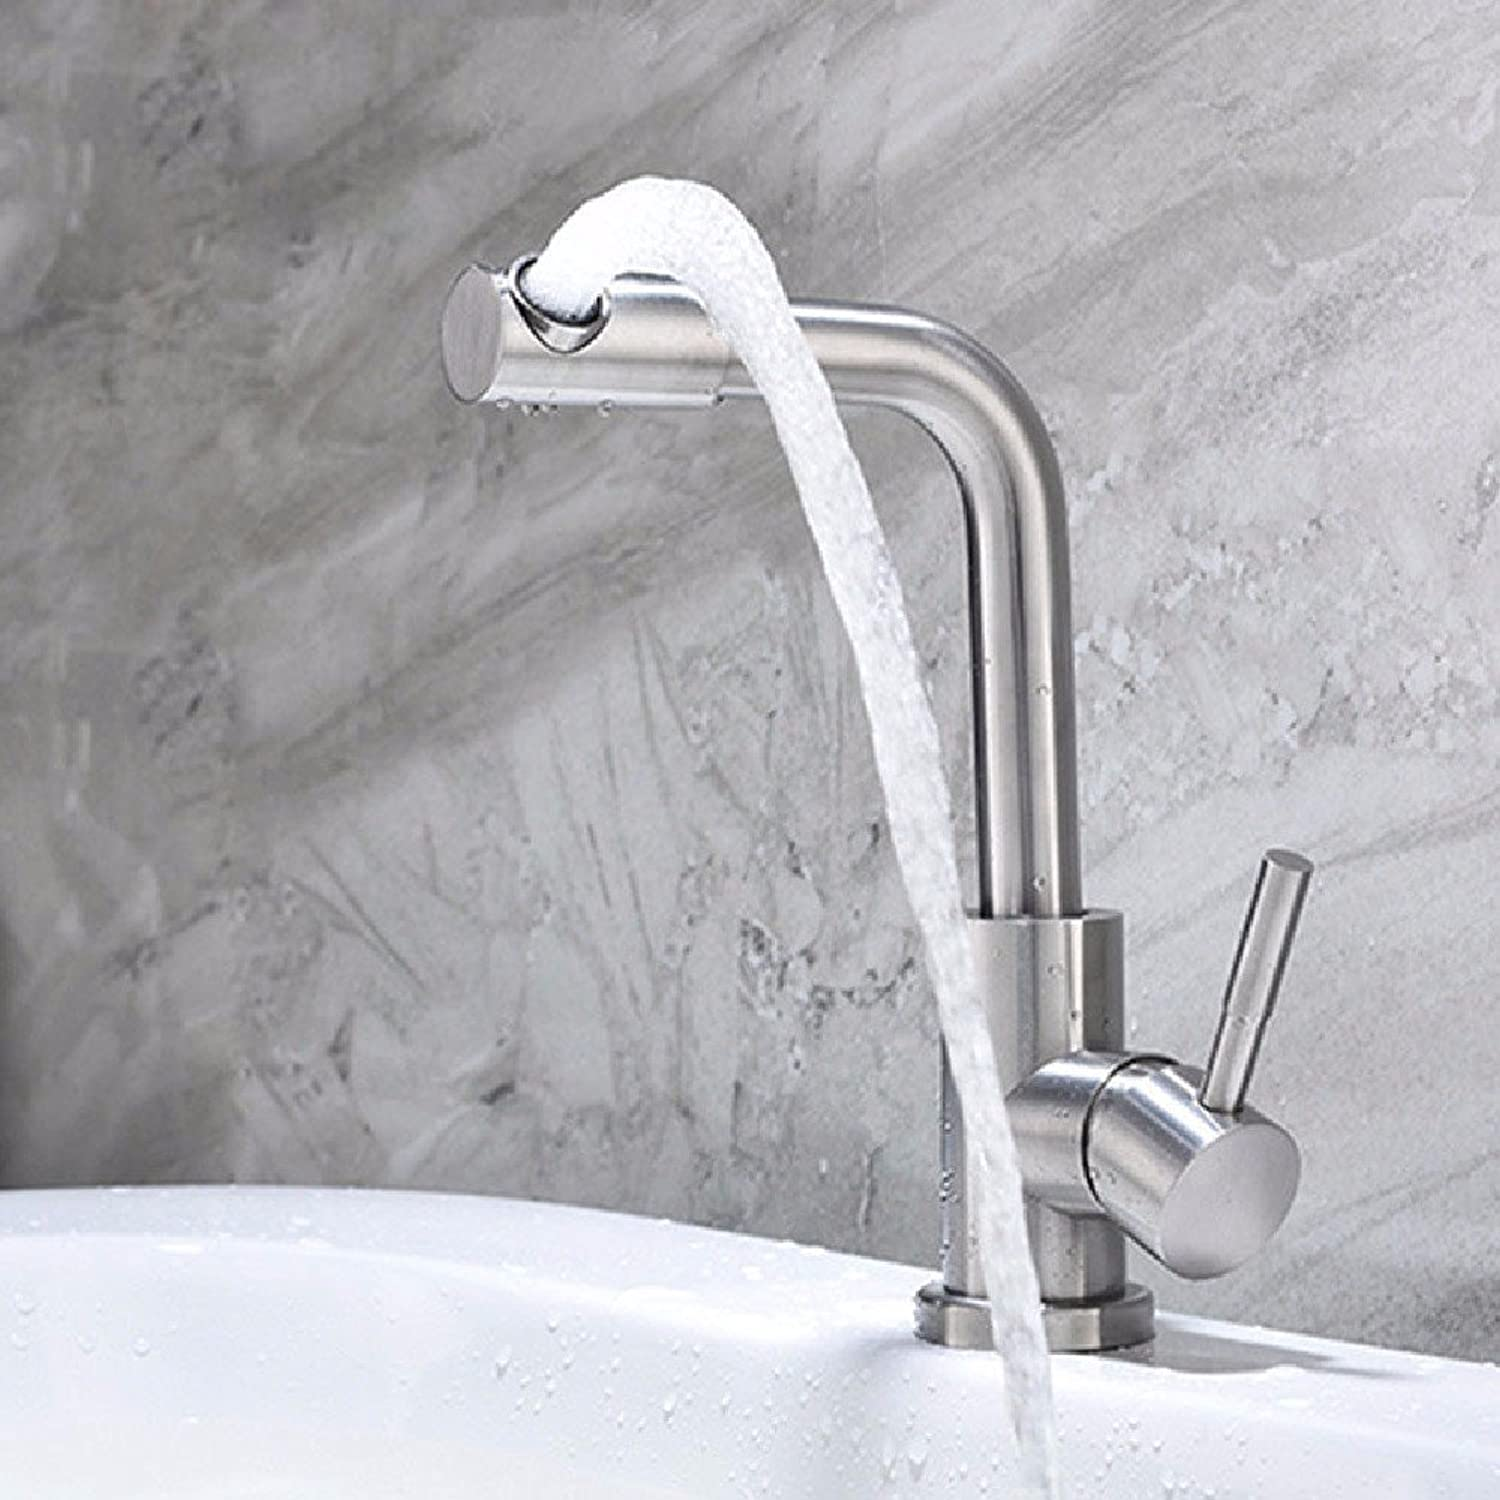 HQLCX Basin Sink Mixer Tap 304 Stainless Steel Hot Hot Basin Faucet